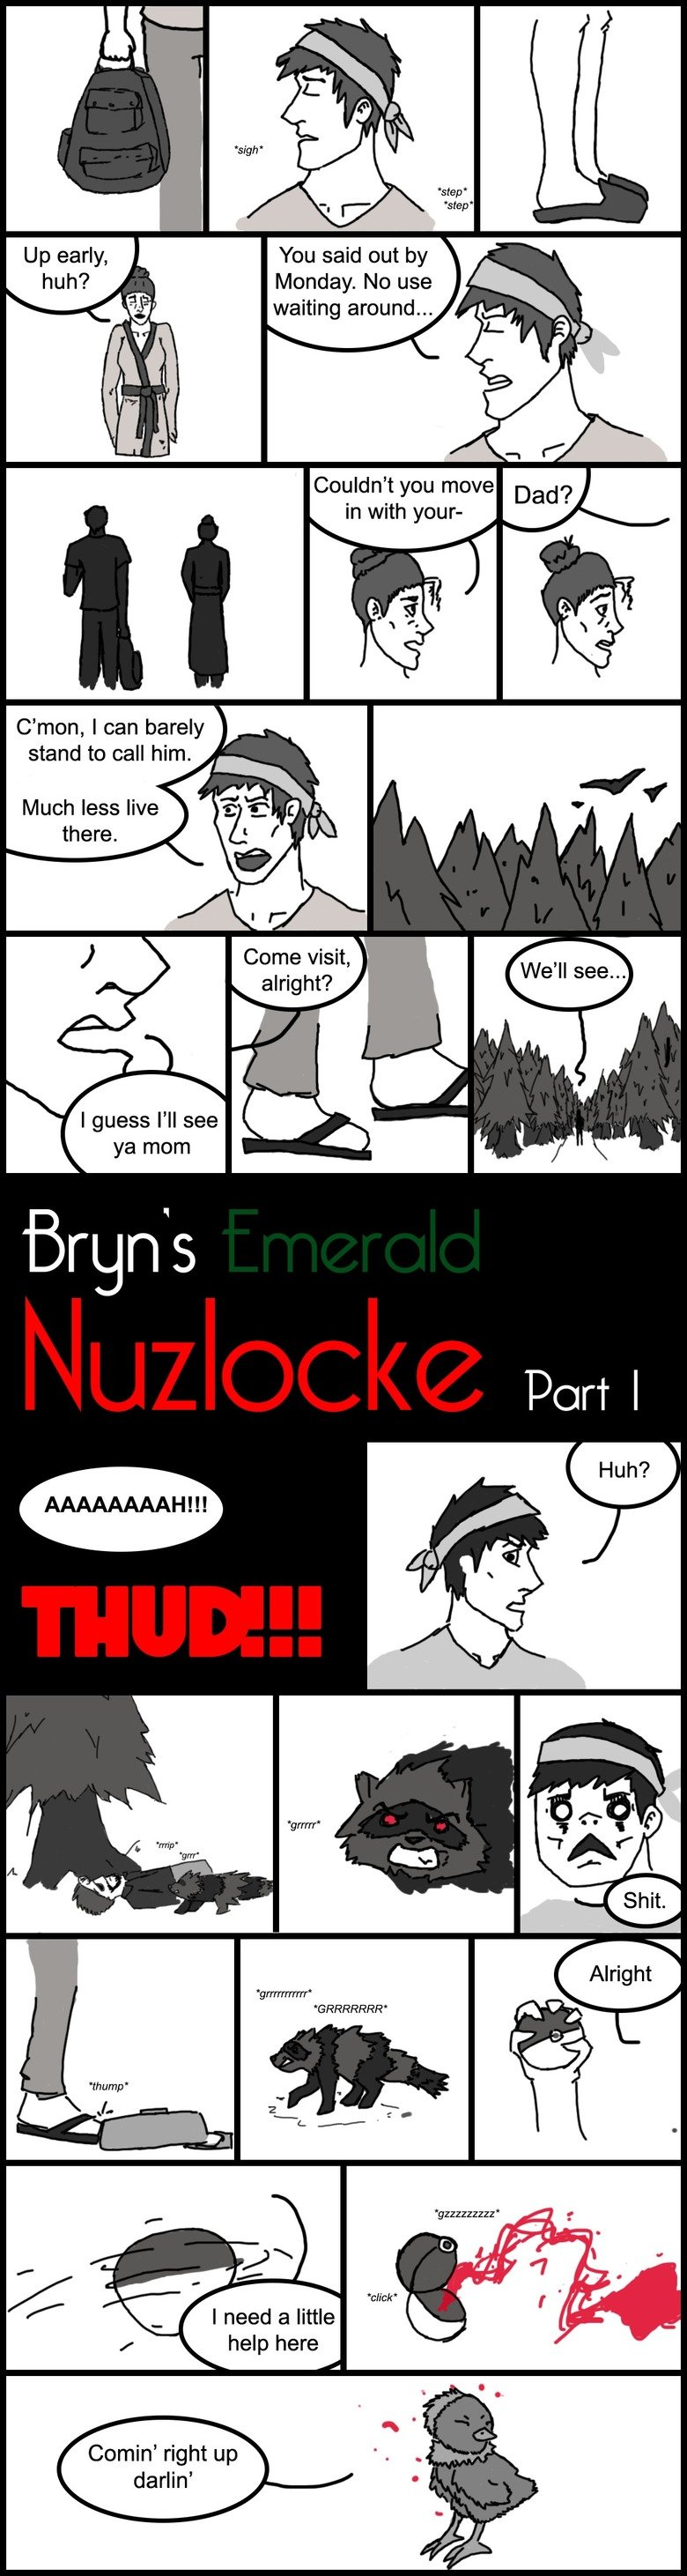 Bryn's Nuzlocke: Part 1. OC! Here's part 1! There's a number of things that I will be trying to improve upon in the future! Thanks for reading! Prologue: funnyj